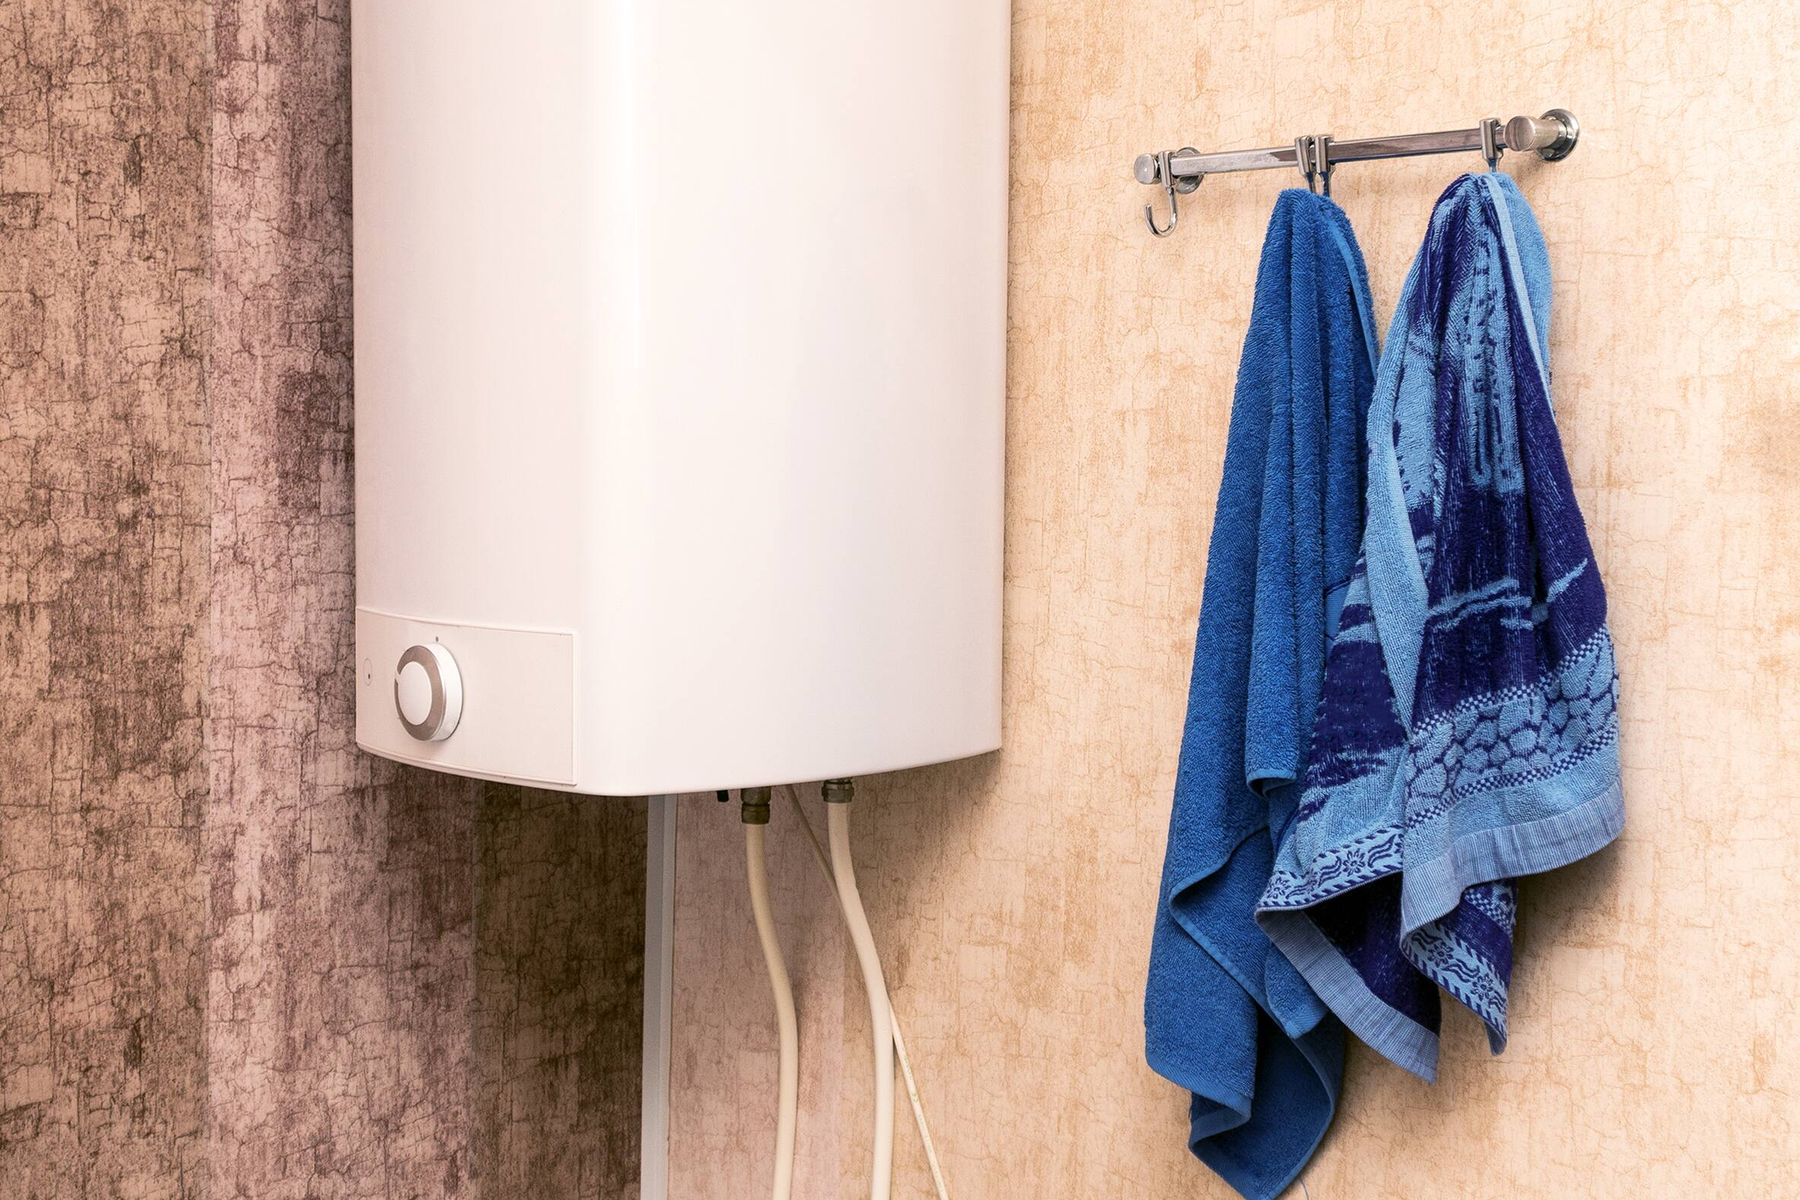 Check out these simple tips and tricks to prolong your geyser's life